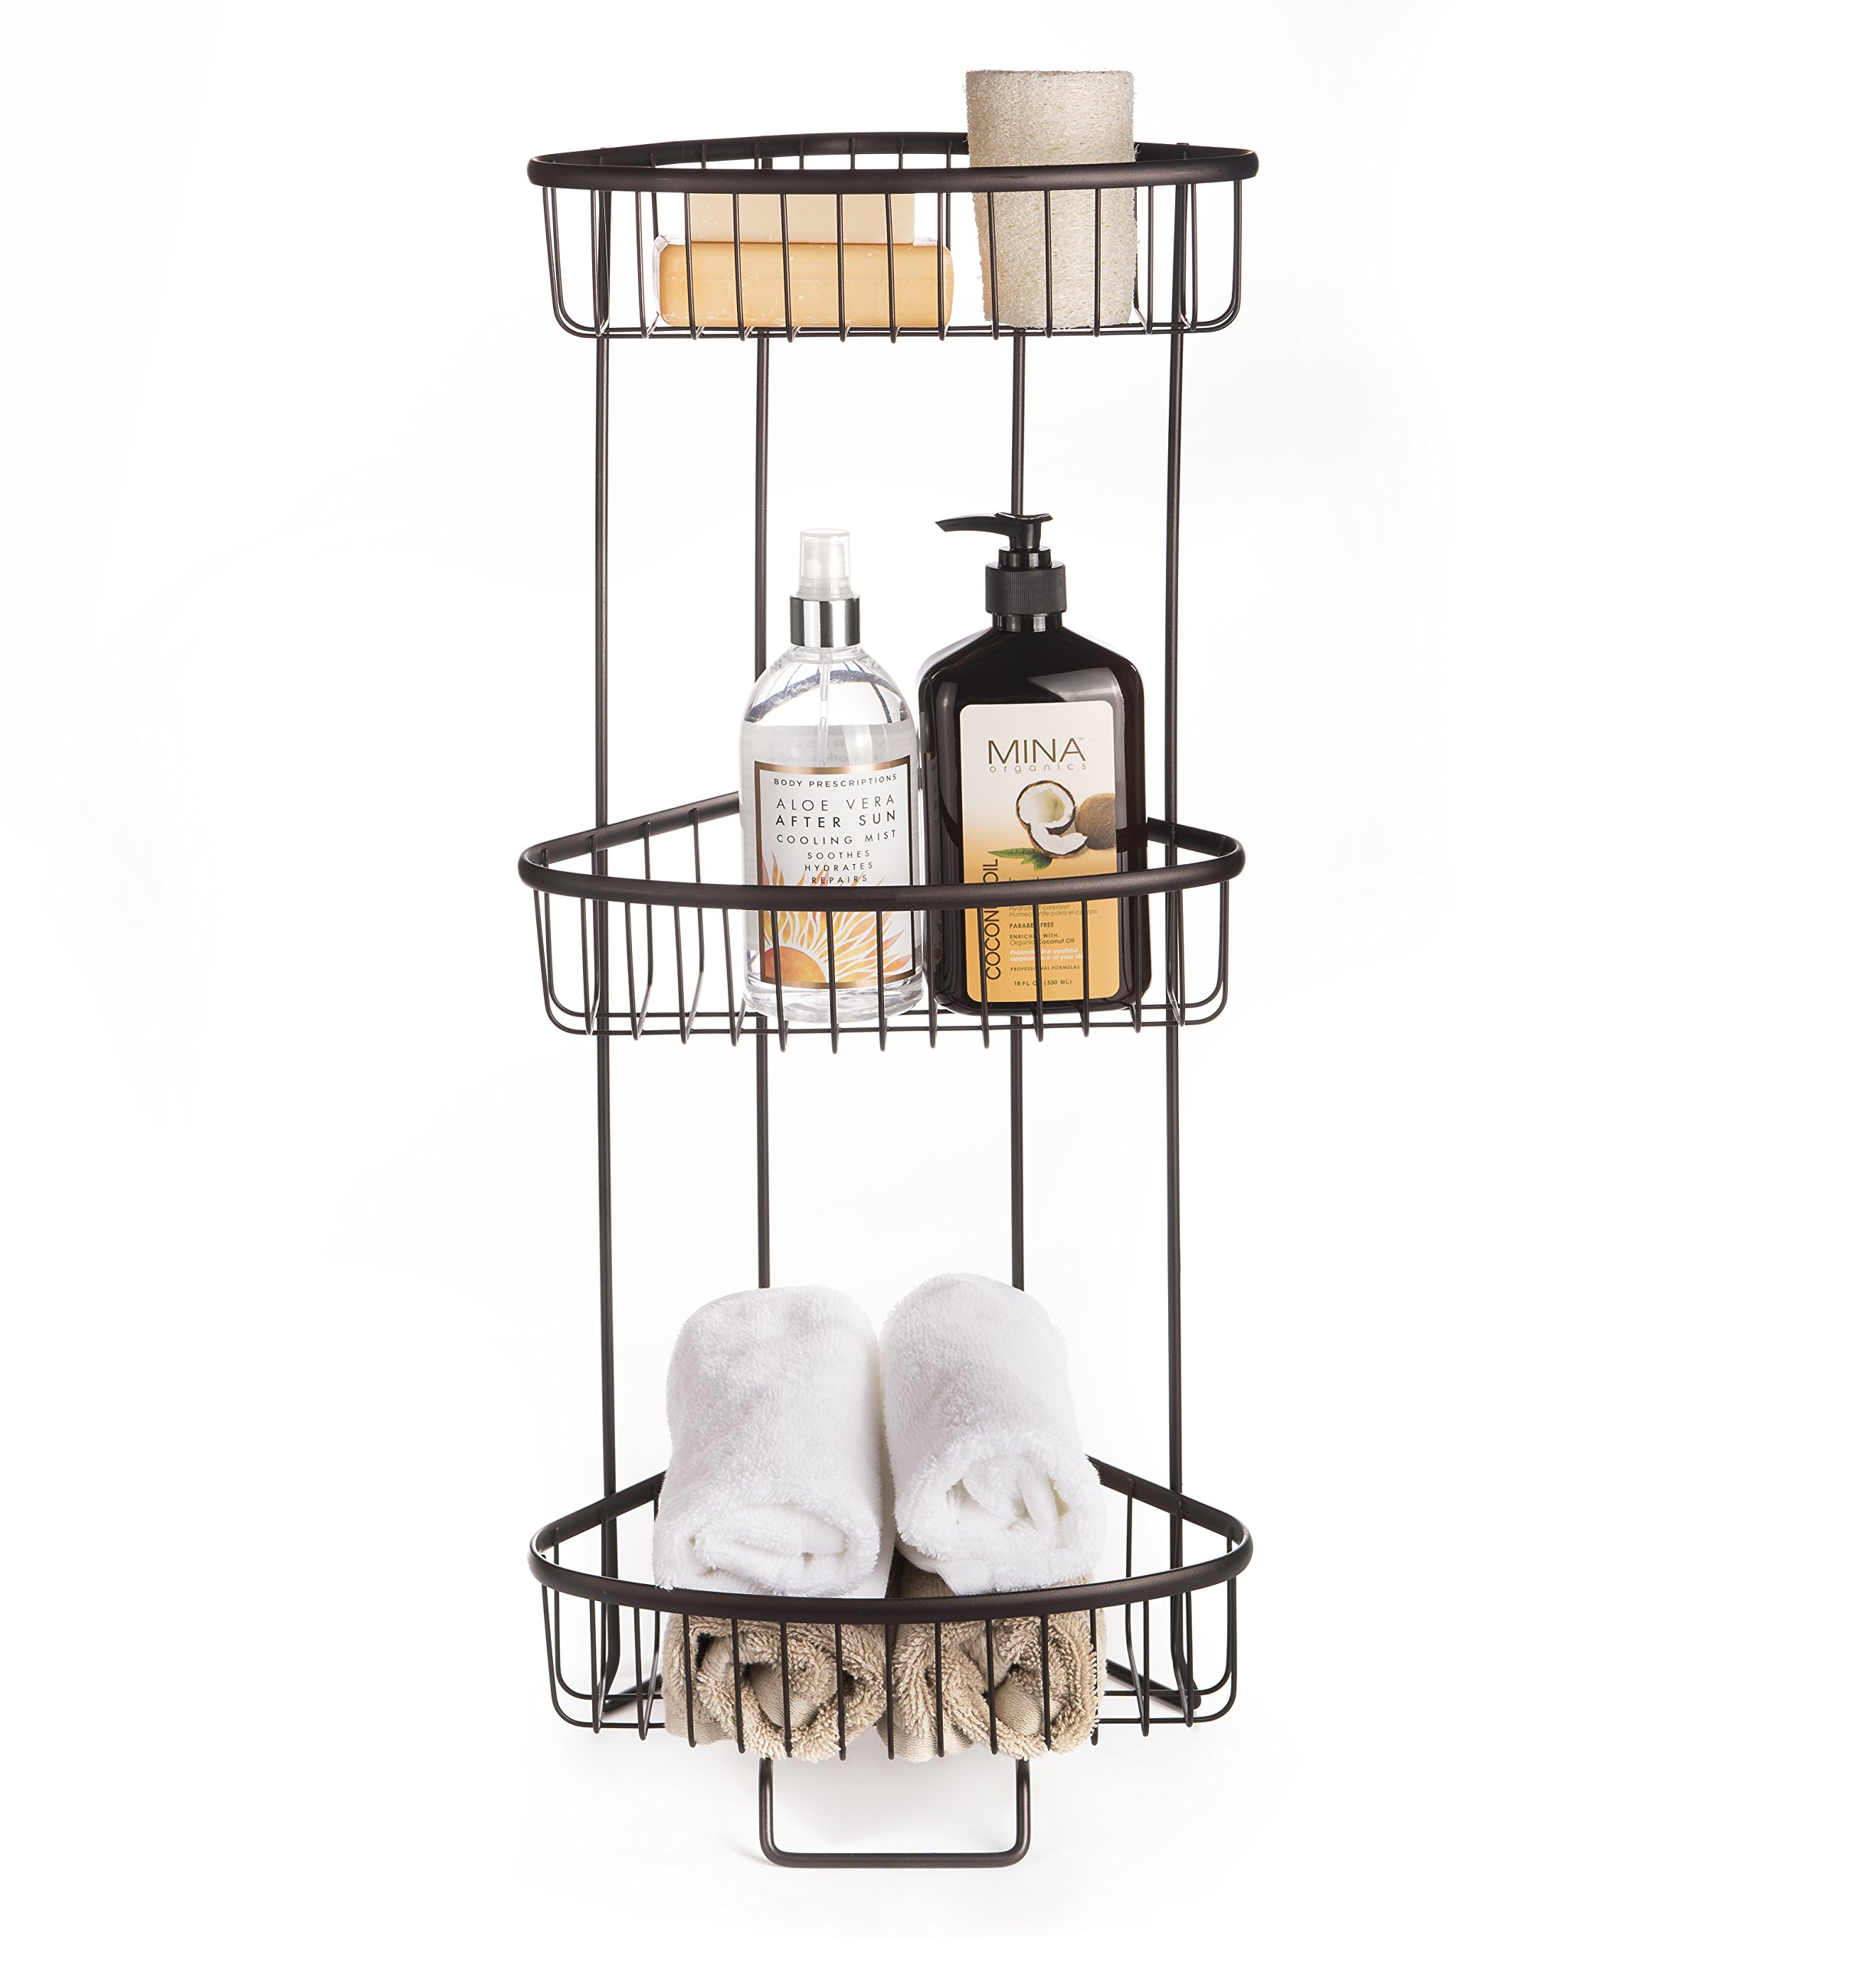 AMG and Enchante Accessories Free Standing Bathroom Spa Tower Storage Caddy, FC100003 ORB, Oil Rubbed Bronze